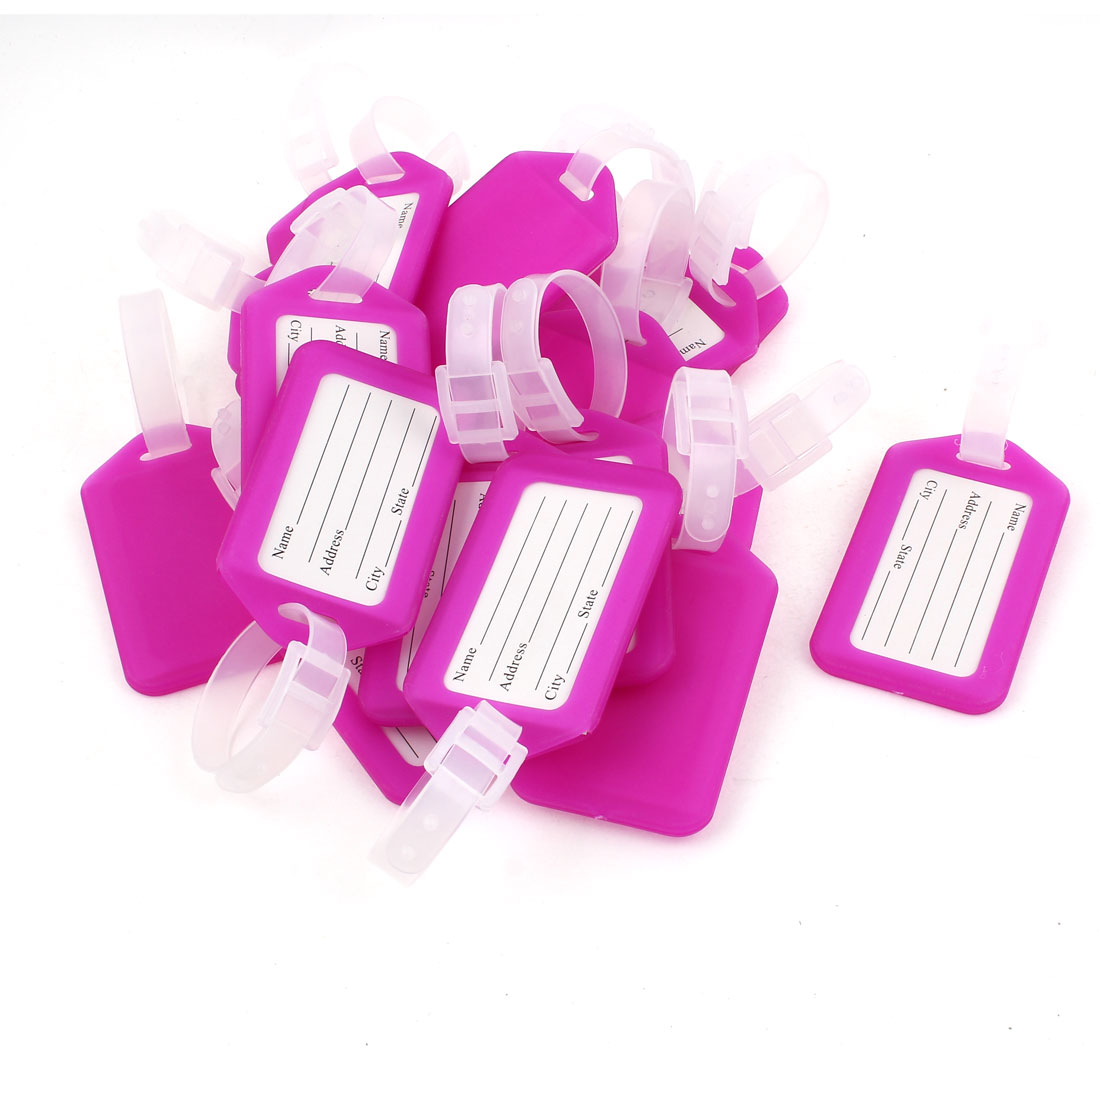 20 Pcs Fuchsia White Hard Plastic Suitcase Name Label Travel Luggage Tags